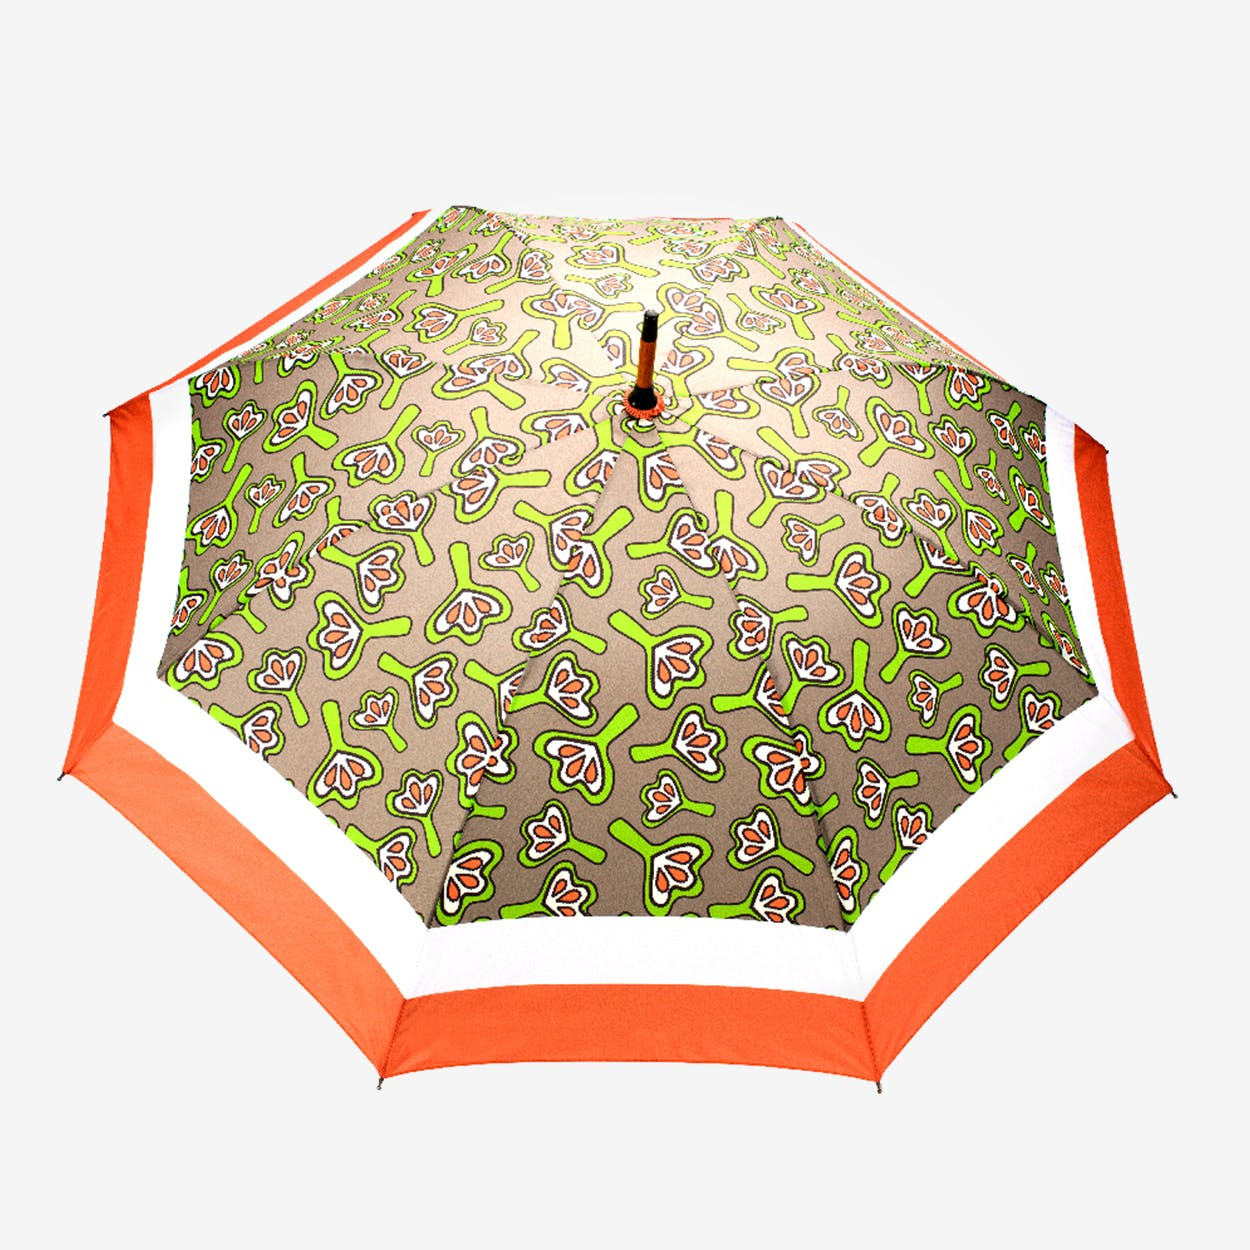 Windproof Auto Open Large Umbrella in Tan Lilies Design